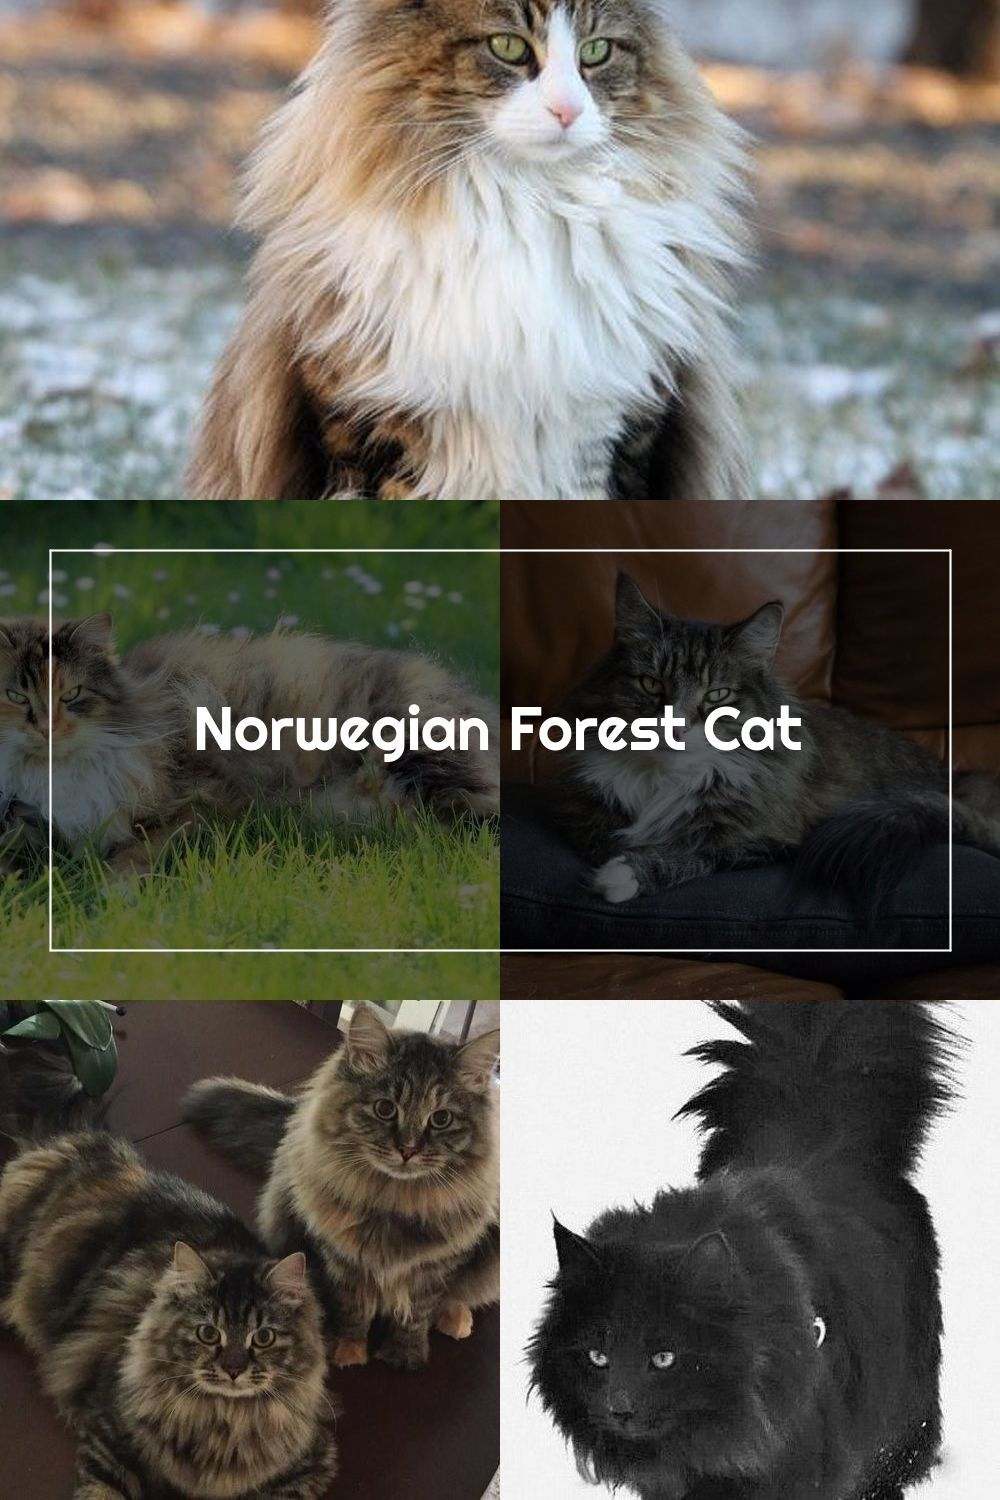 The Norwegian Forest Cat Is Strongly Built And Larger Than An Average Cat Adult Females Of The Species Will T In 2020 Norwegian Forest Cat Norwegian Forest Forest Cat